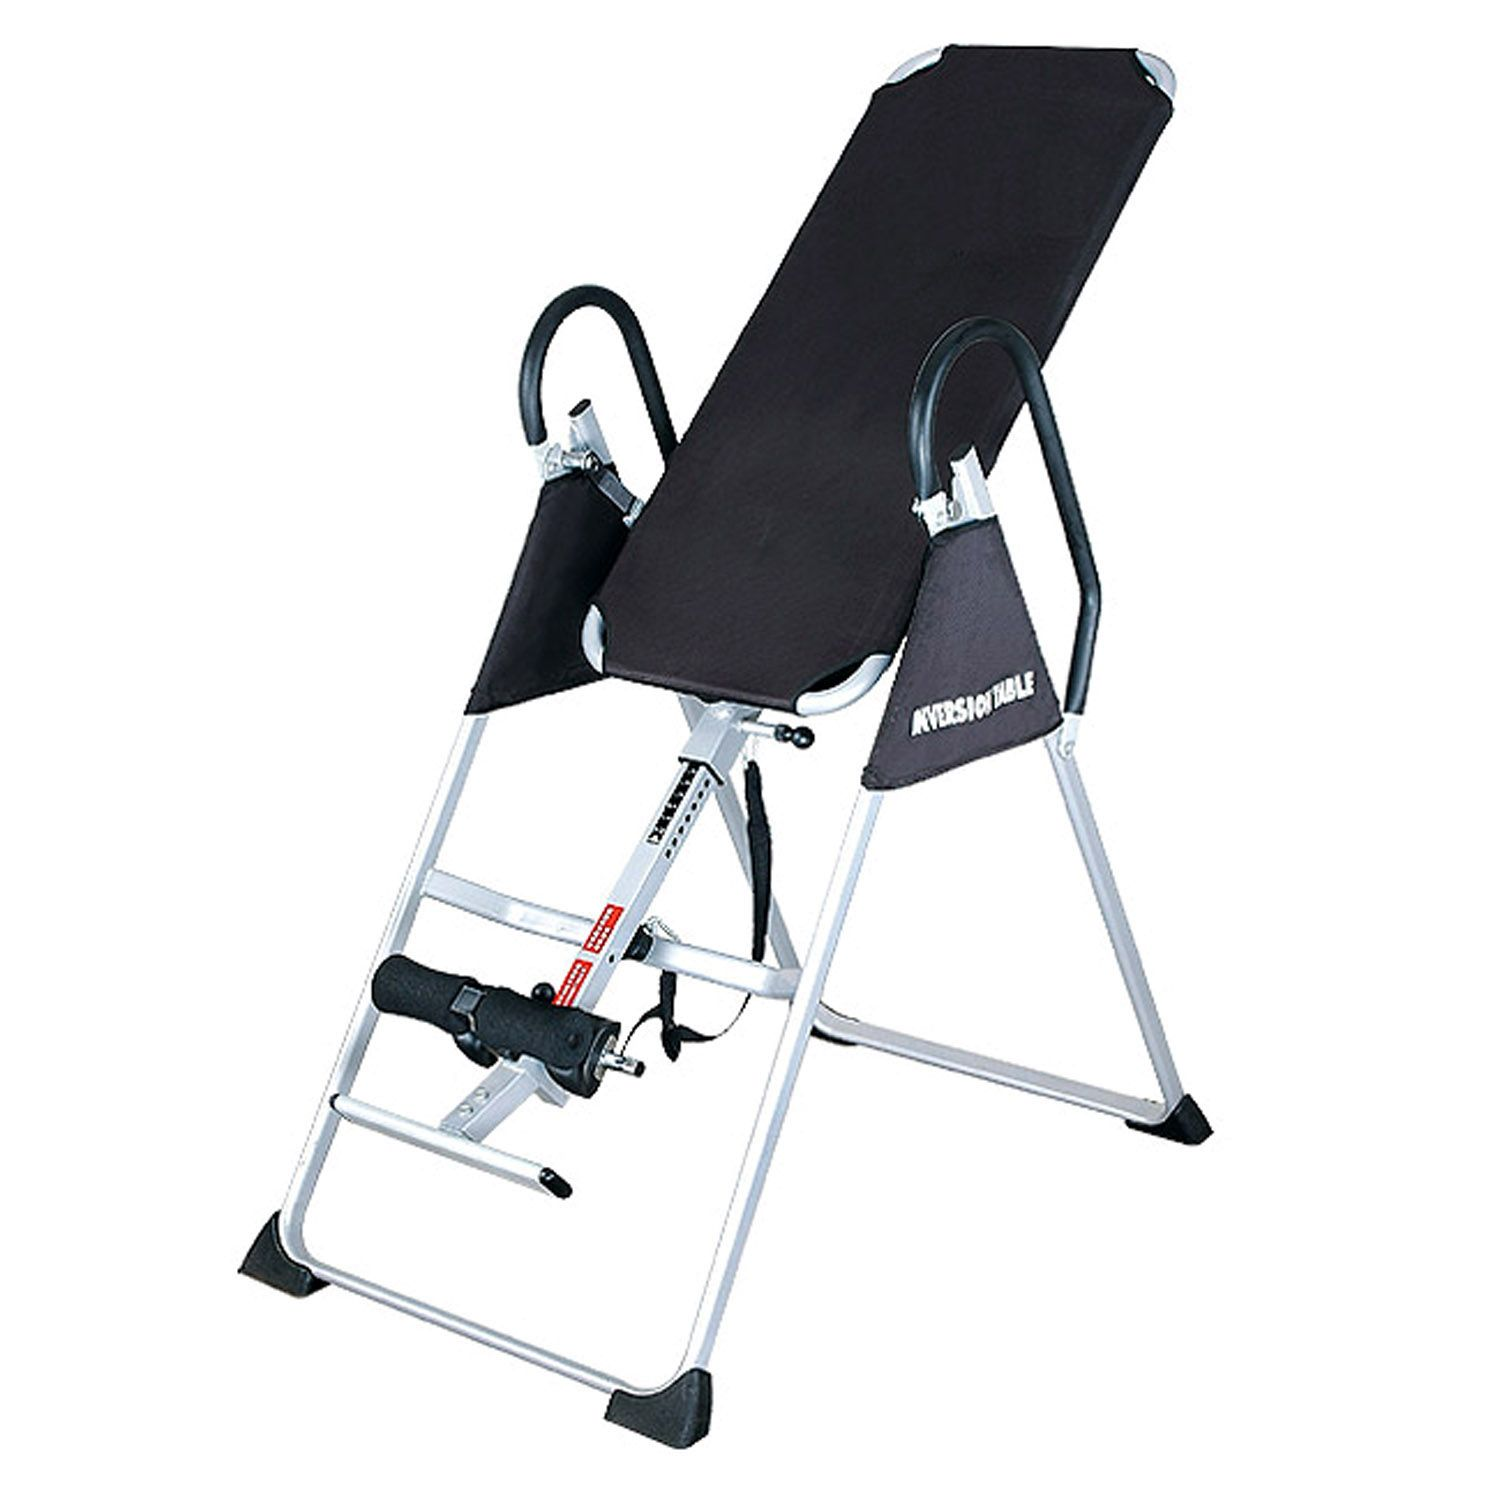 Sunny Health & Fitness  Sunny Inversion Table